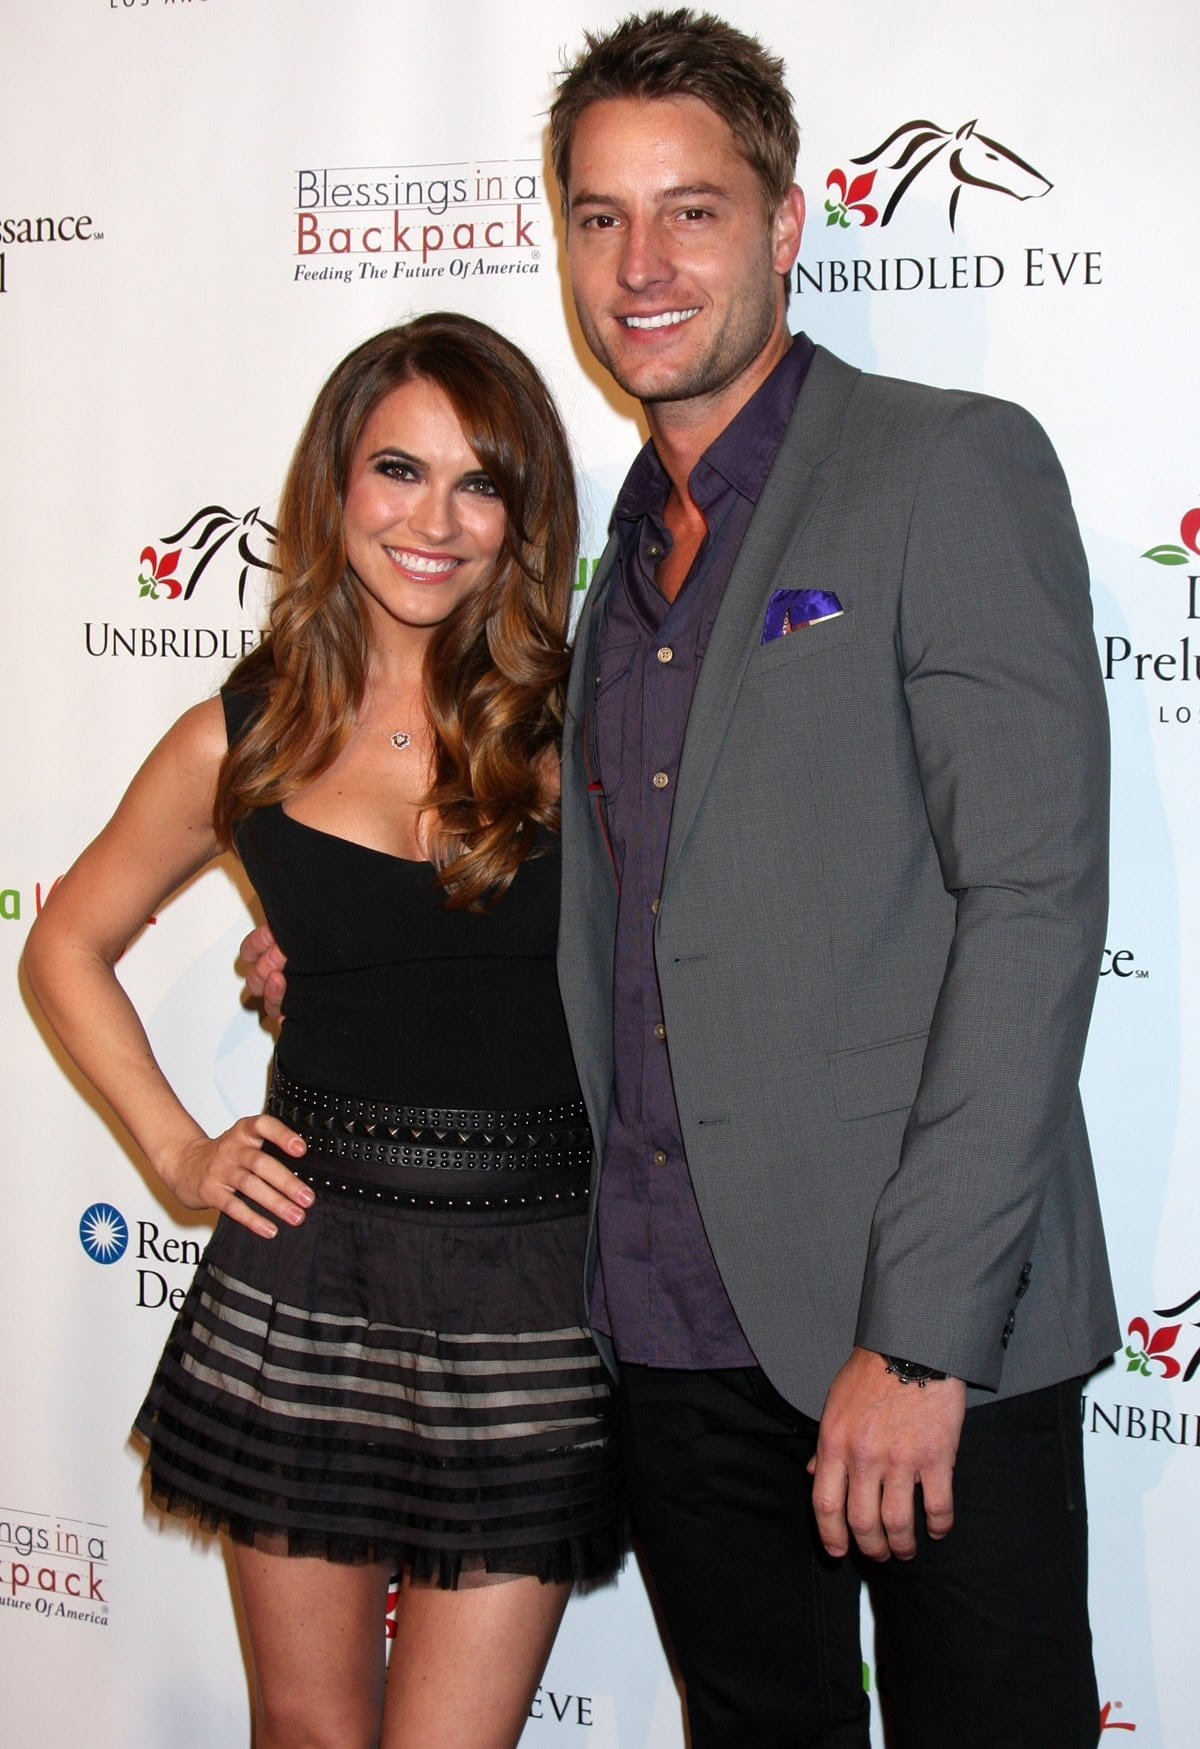 Justin Hartley met Chrishell Stause for the first time when she was working with Justin's ex-wife, Lindsay Hartley, on the set of All My Children